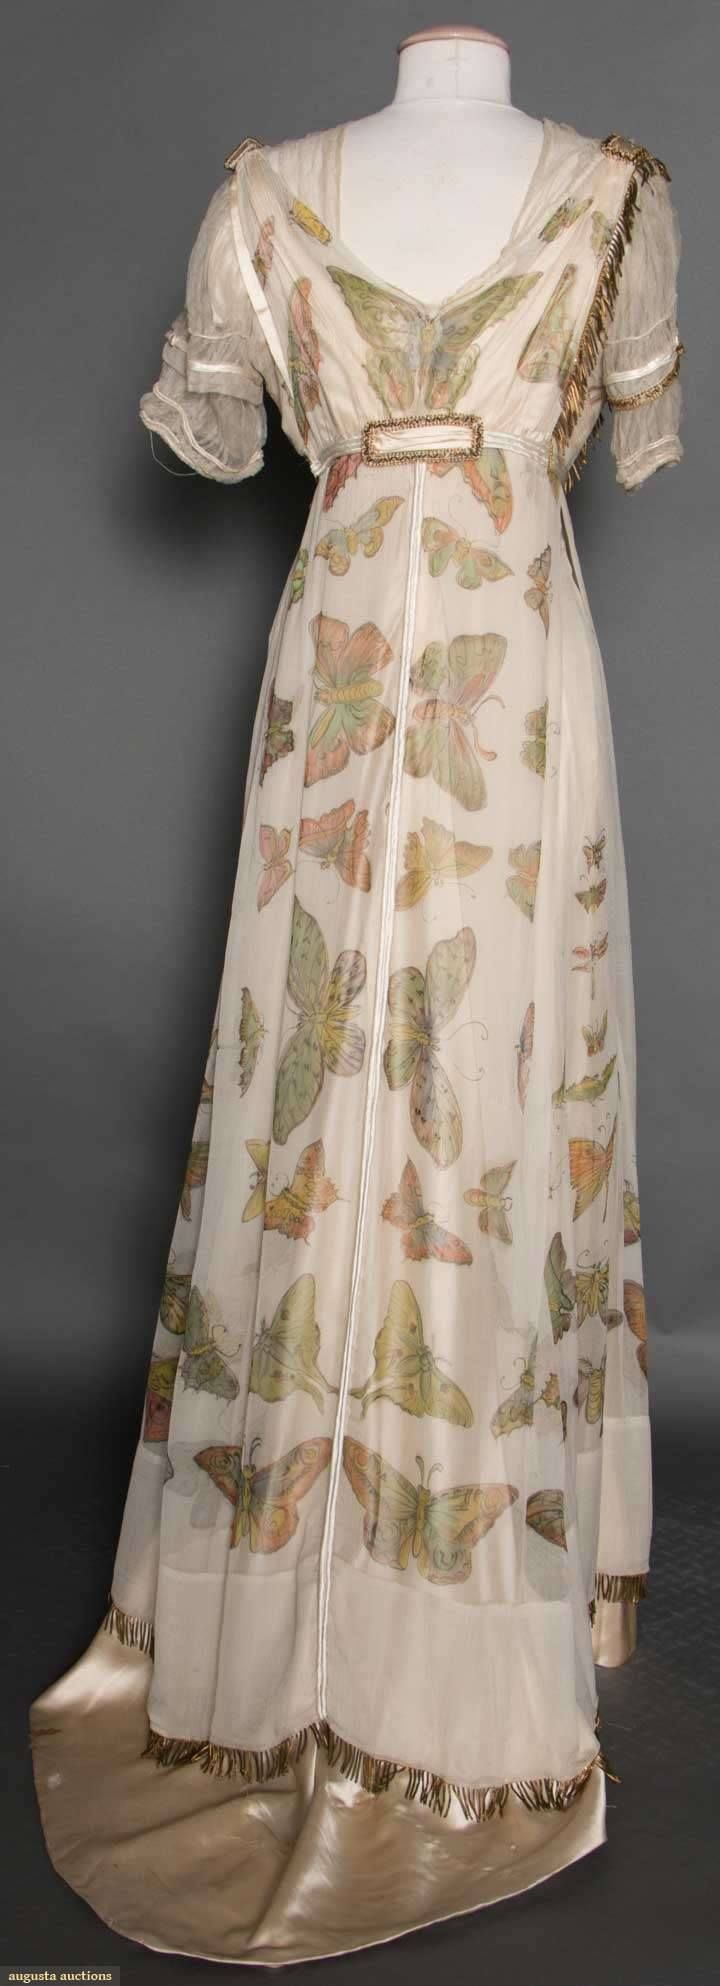 Silk Chiffon Edwardian gown 1912 by Liberty From Augusta Auctions